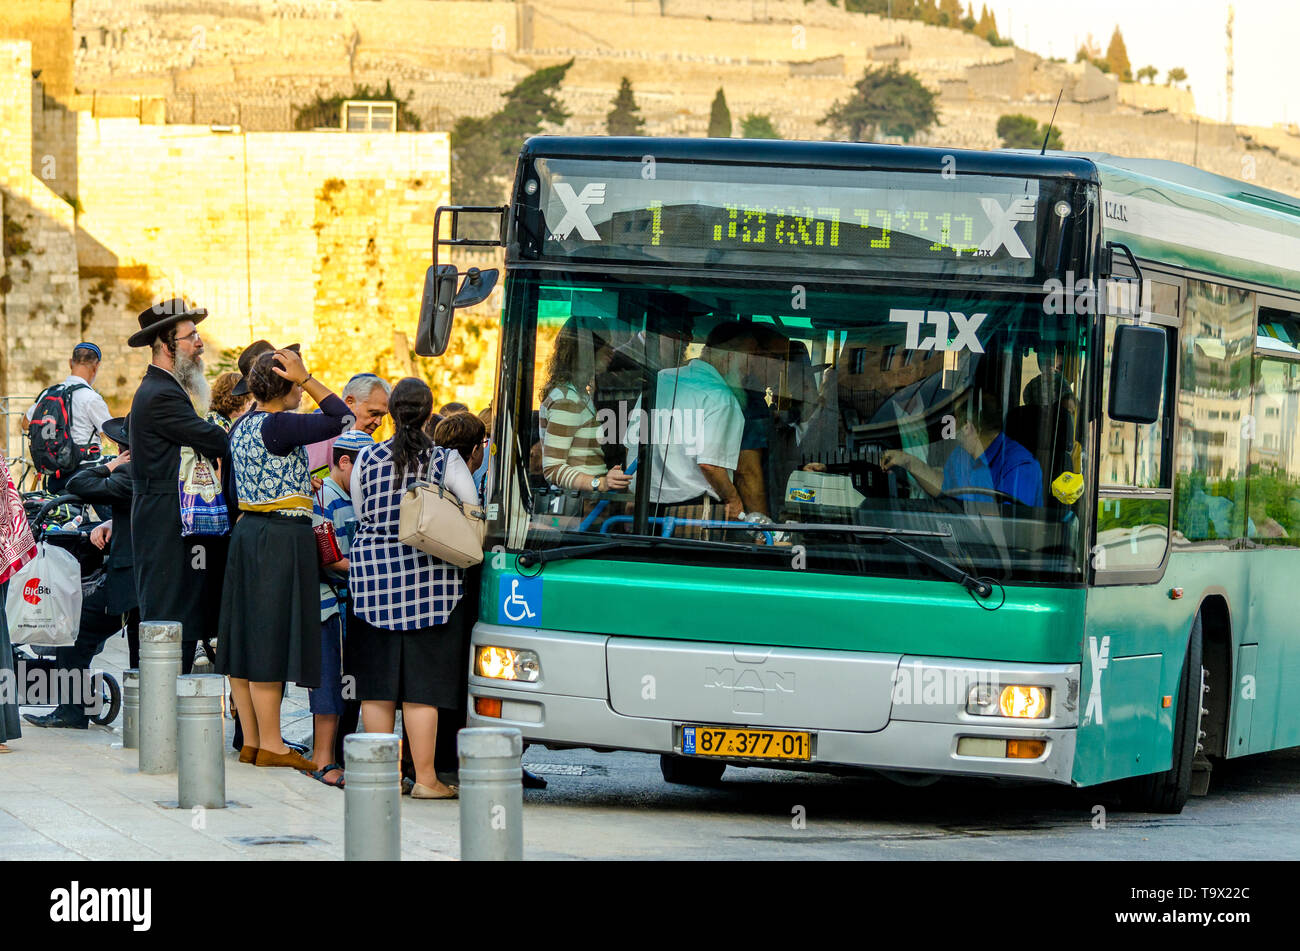 Jerusalem, Israel- August 17, 2016: Group of orthodox Jews waiting to get on a public transit bus at the Dung Gate bus stop in Old City of Jerusalem - Stock Image